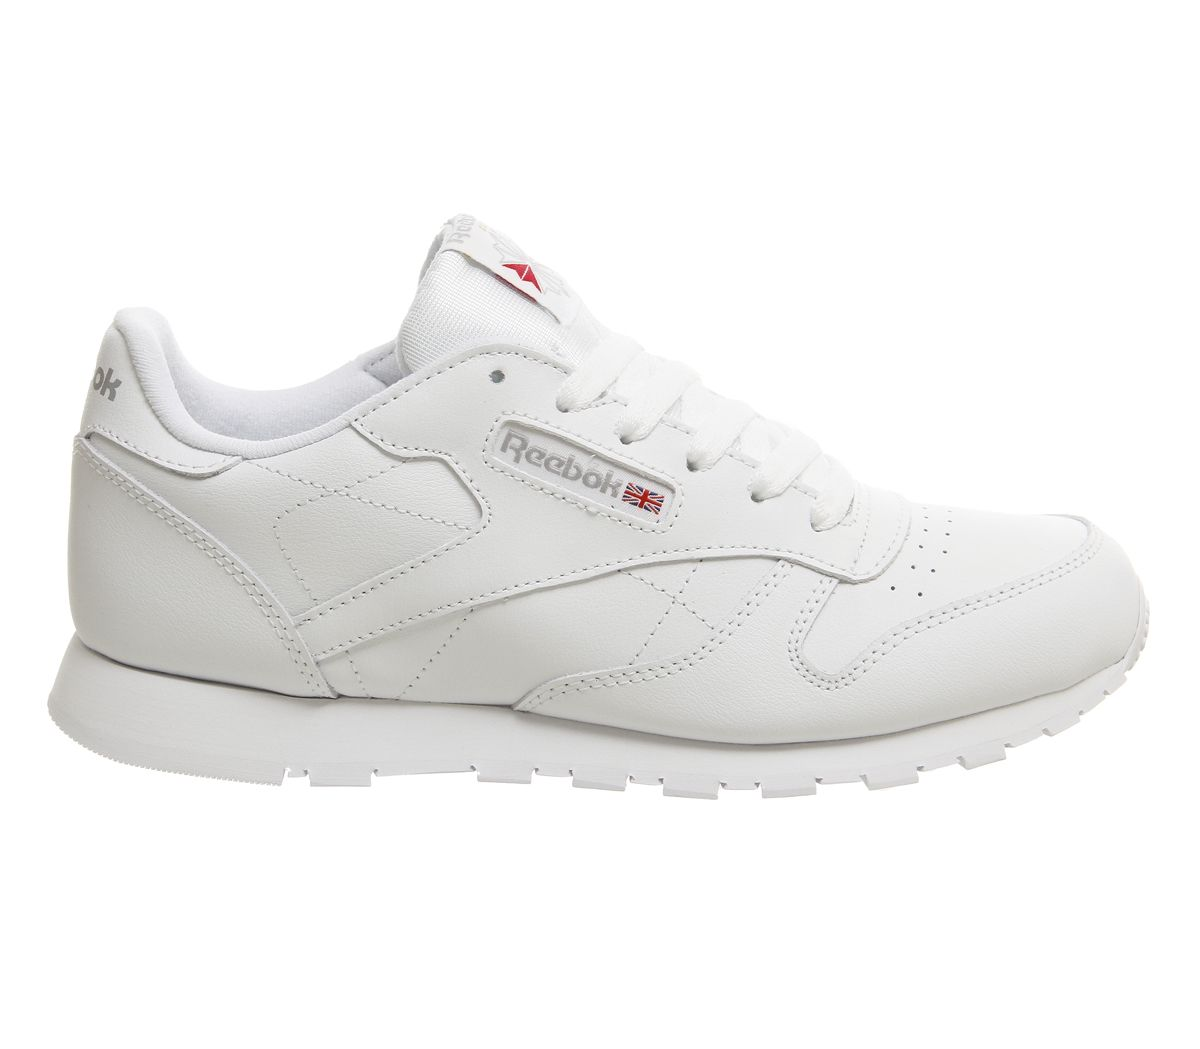 new product 18de4 aa251 Sentinel Womens Reebok Classic Leather Gs Trainers White Trainers Shoes